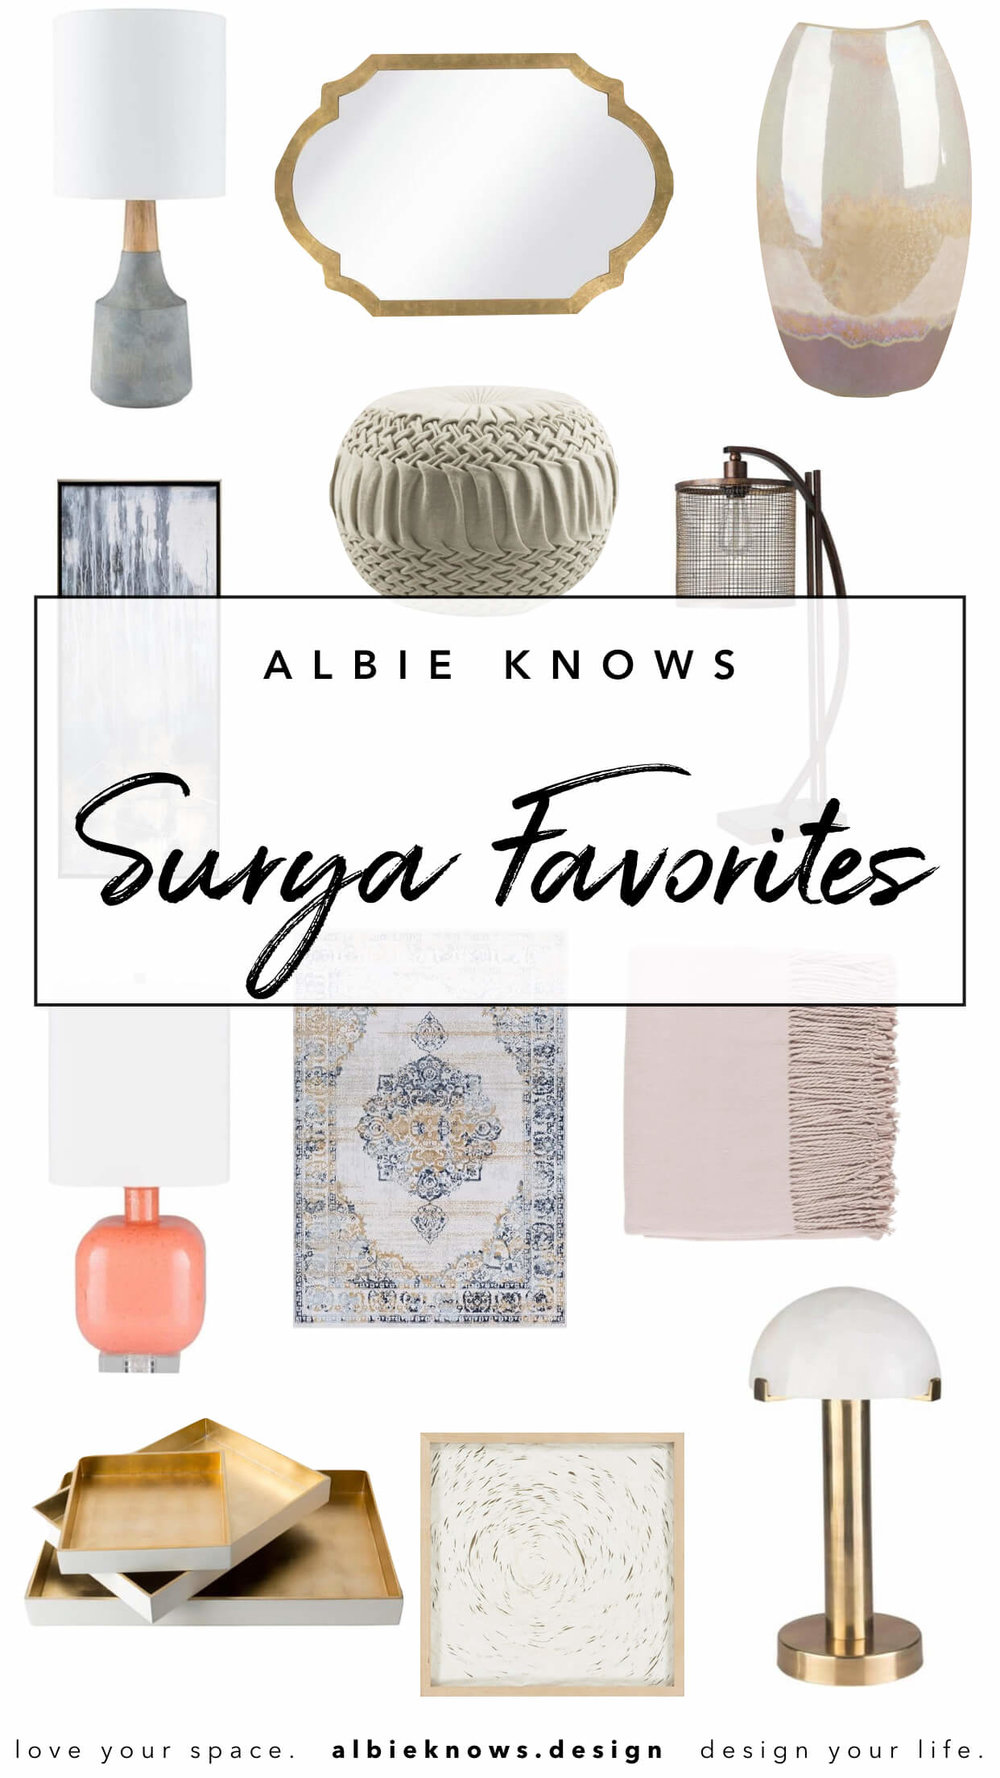 Surya Home Favorites by Albie Knows